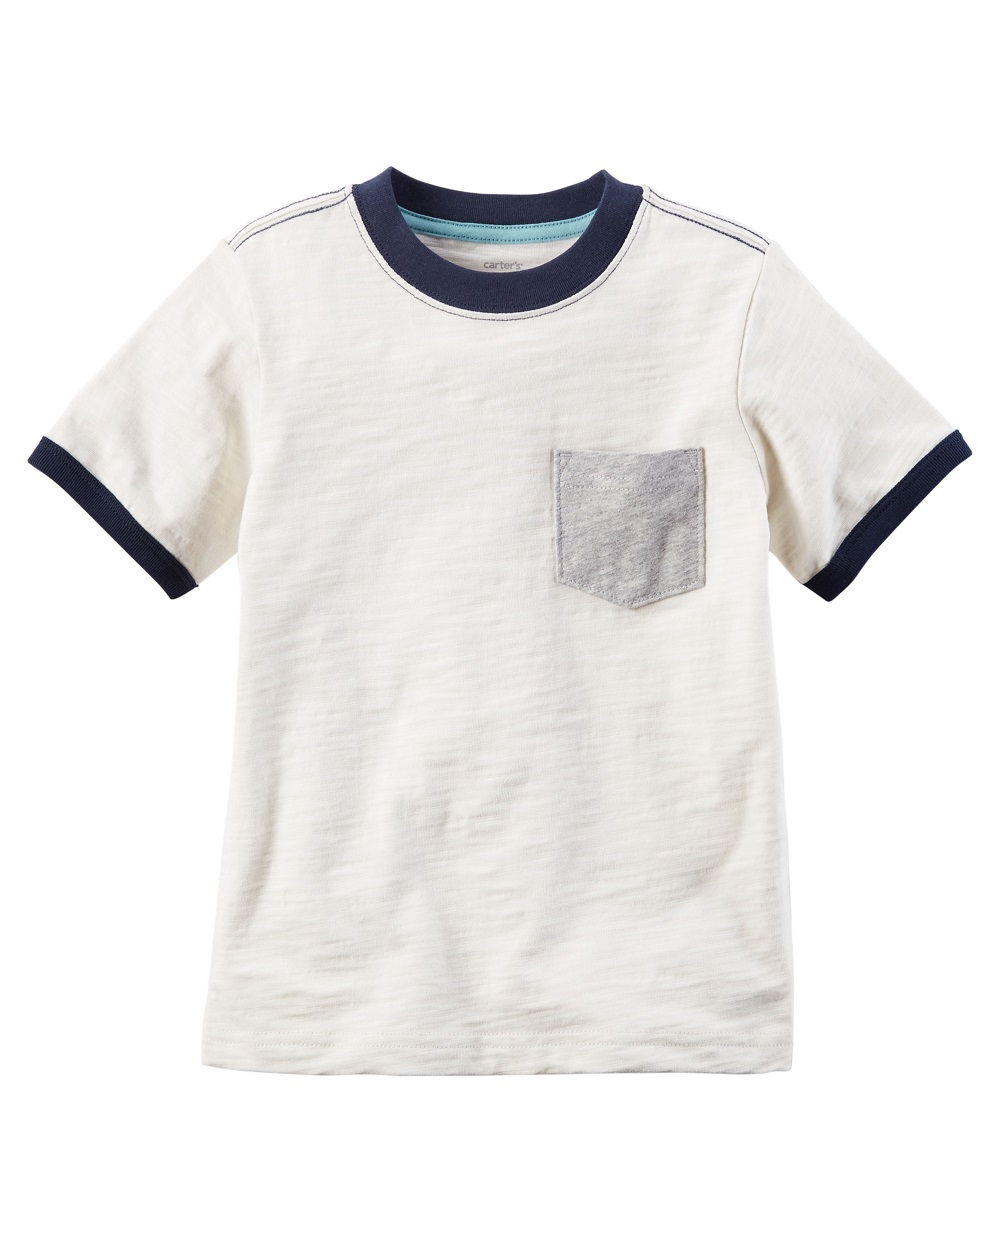 Carter's Little Boys' Pocket Ringer Tee, 6 Kids